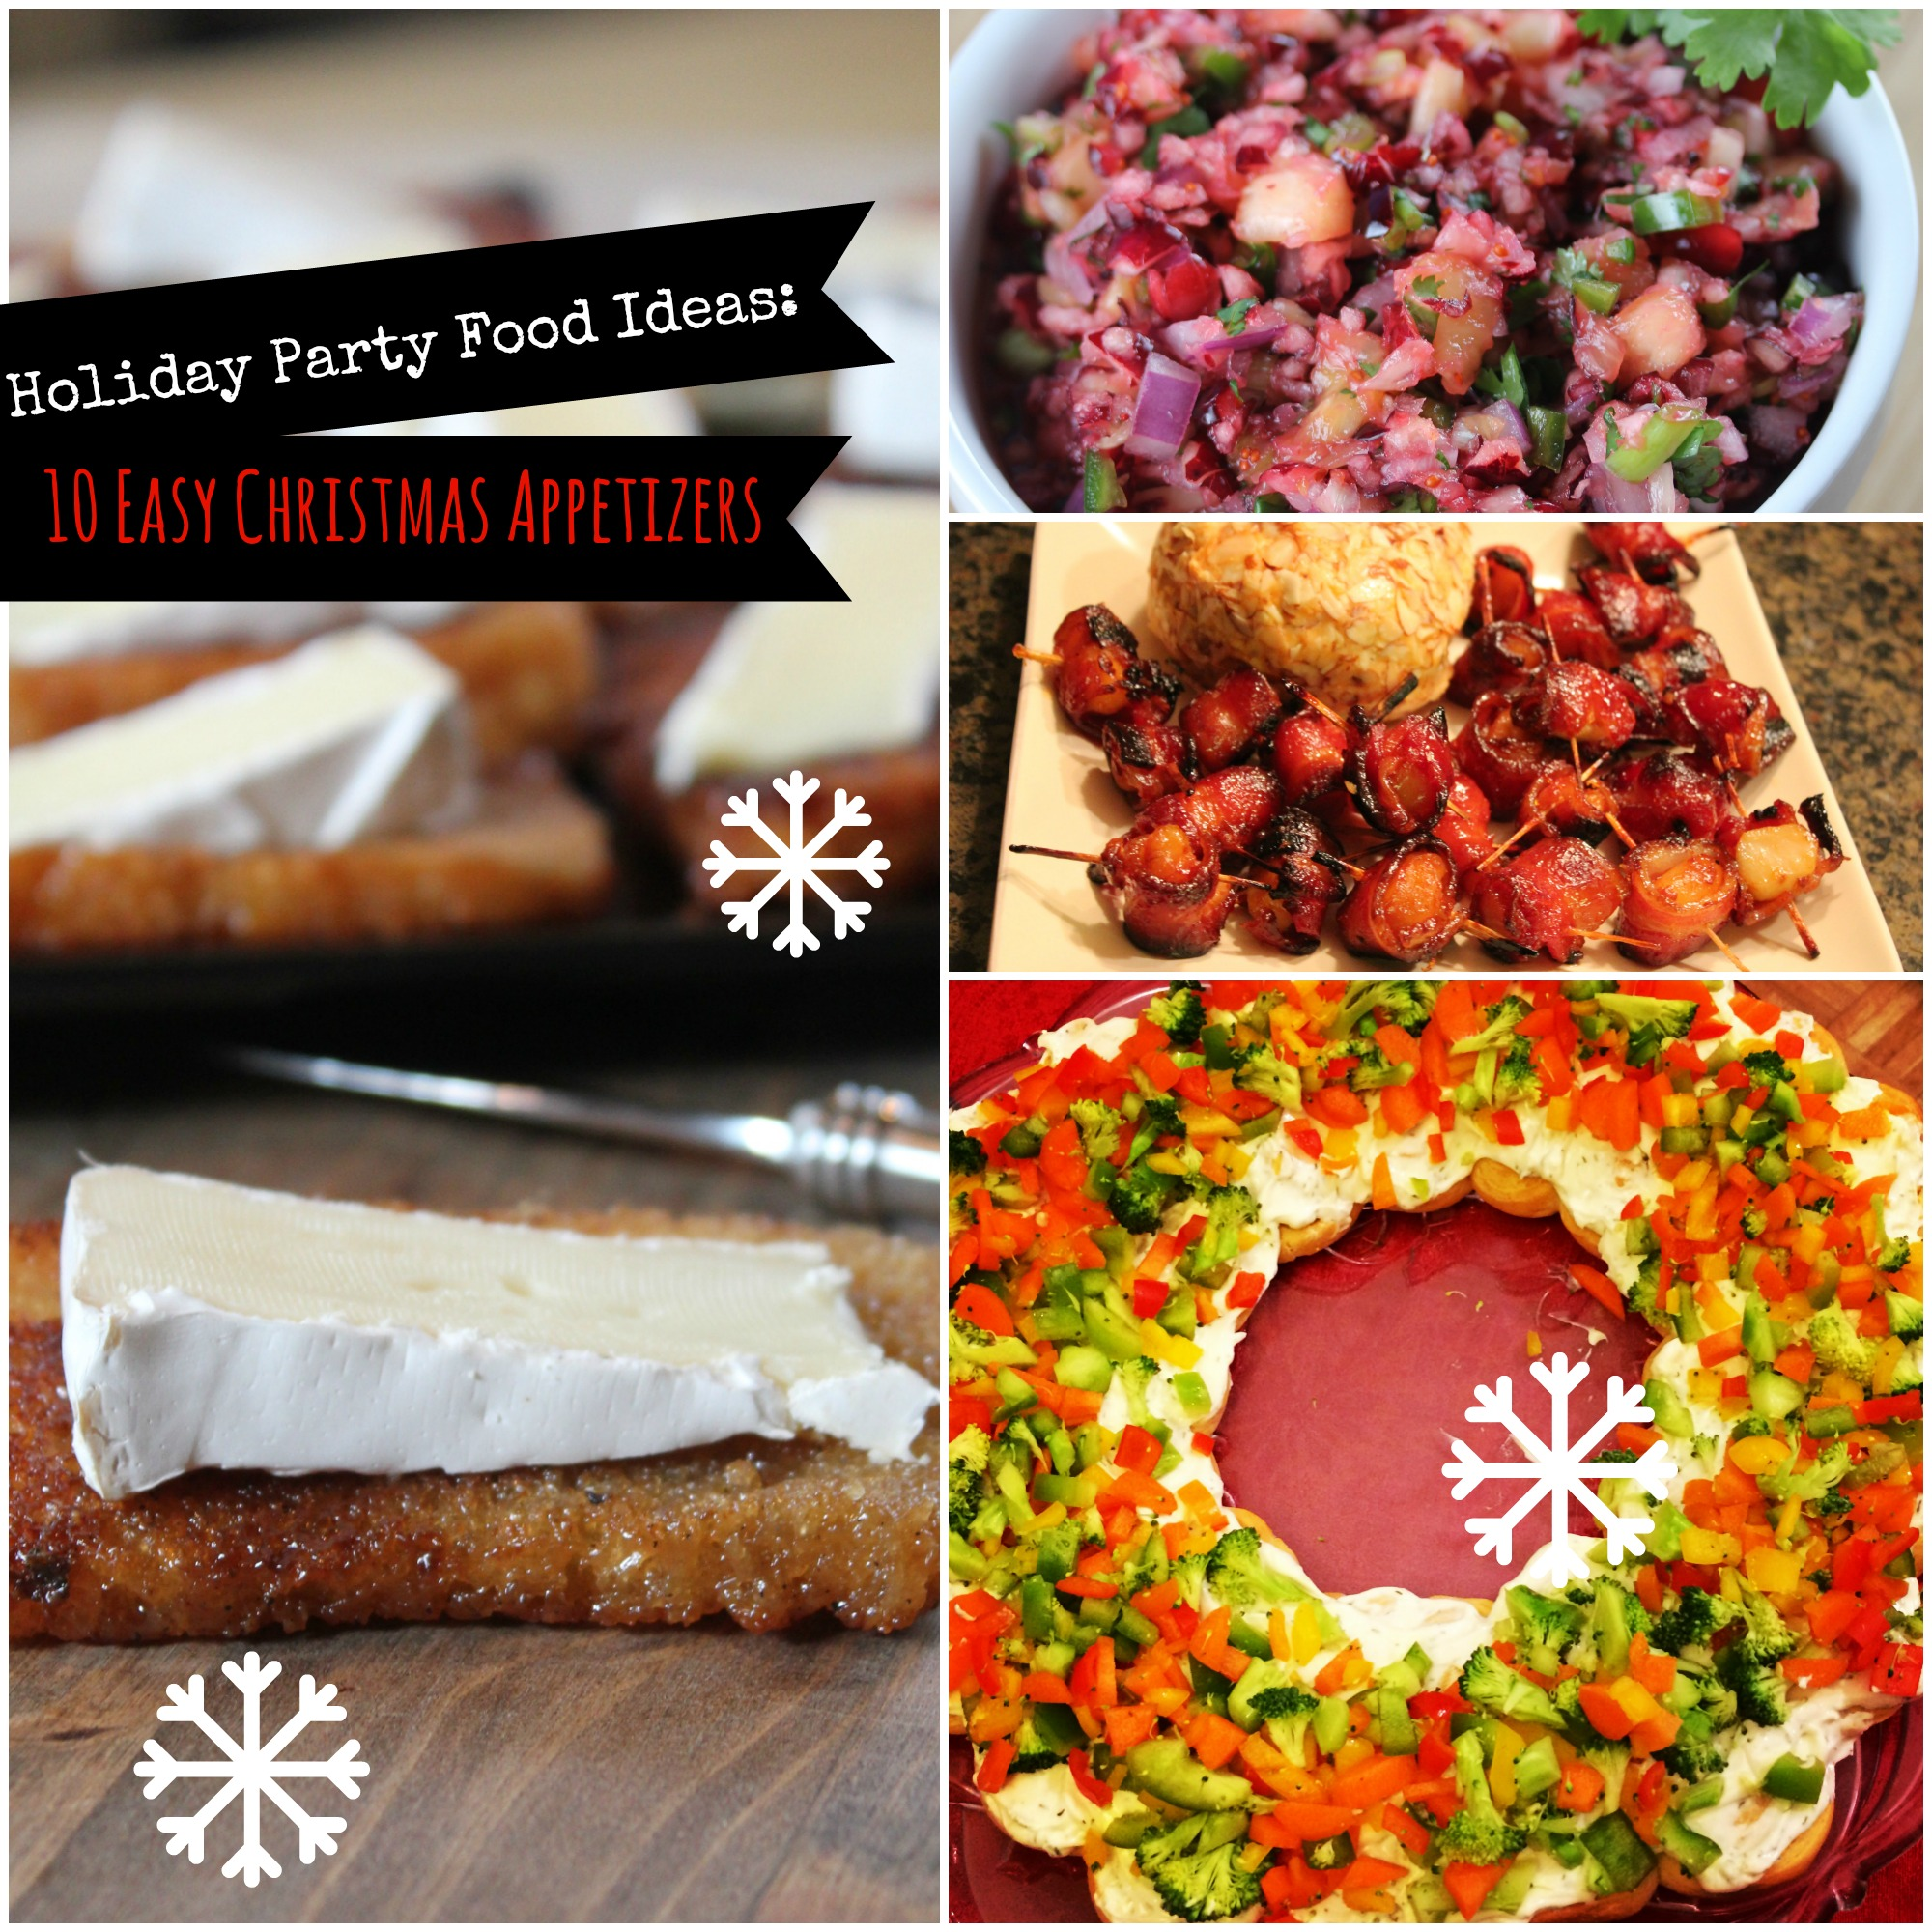 Holiday Party Food Ideas 10 Easy Christmas Appetizers Mommysavers